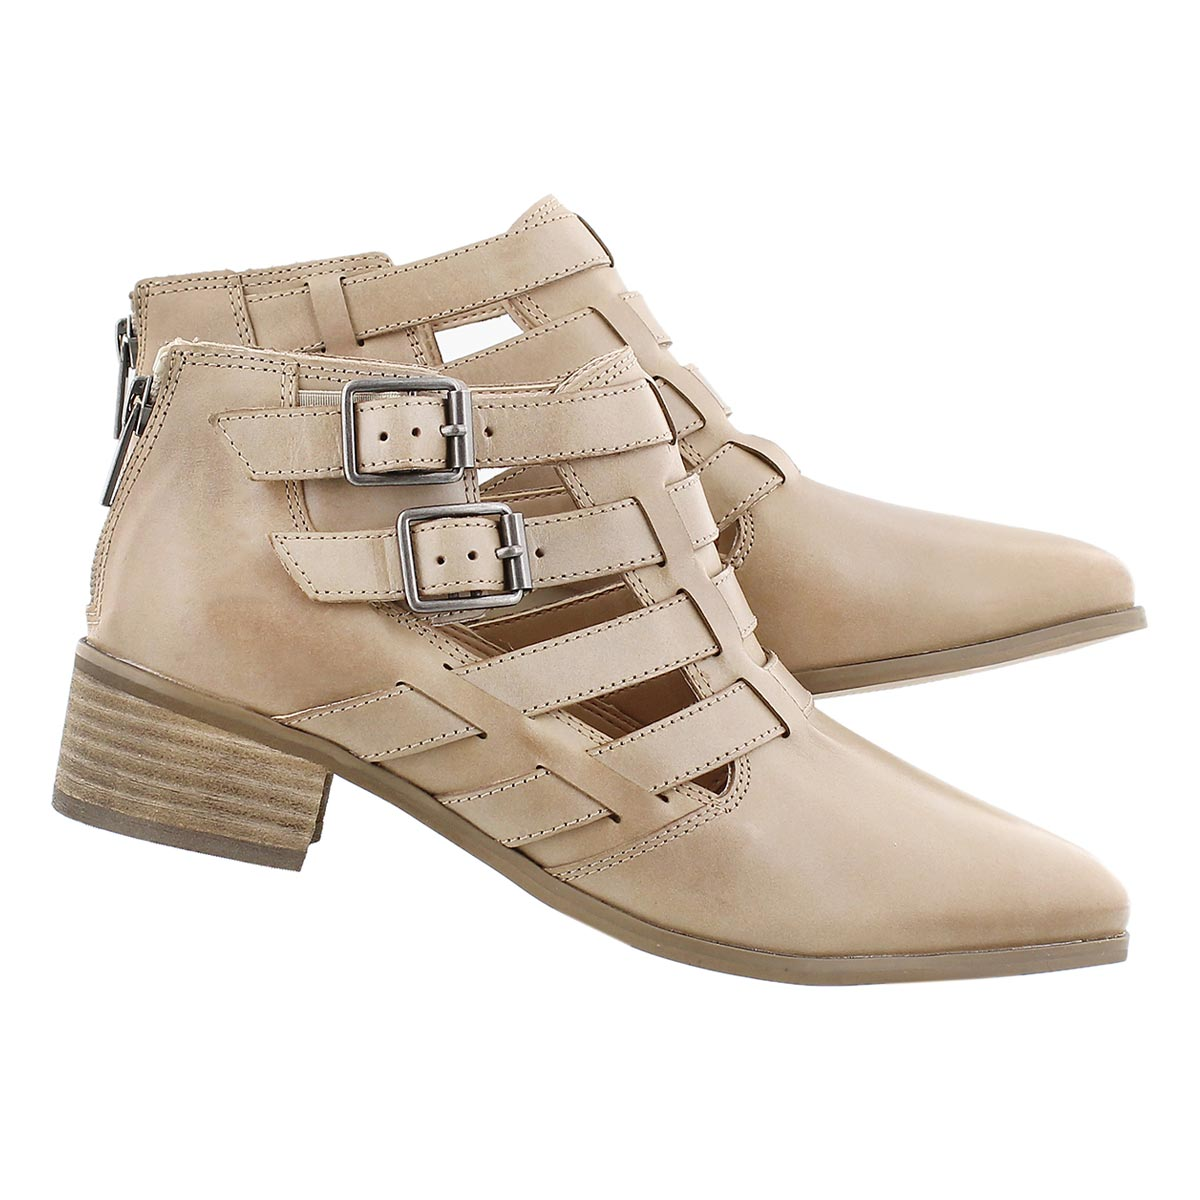 Lds Marlina Ramble sand ankle boot